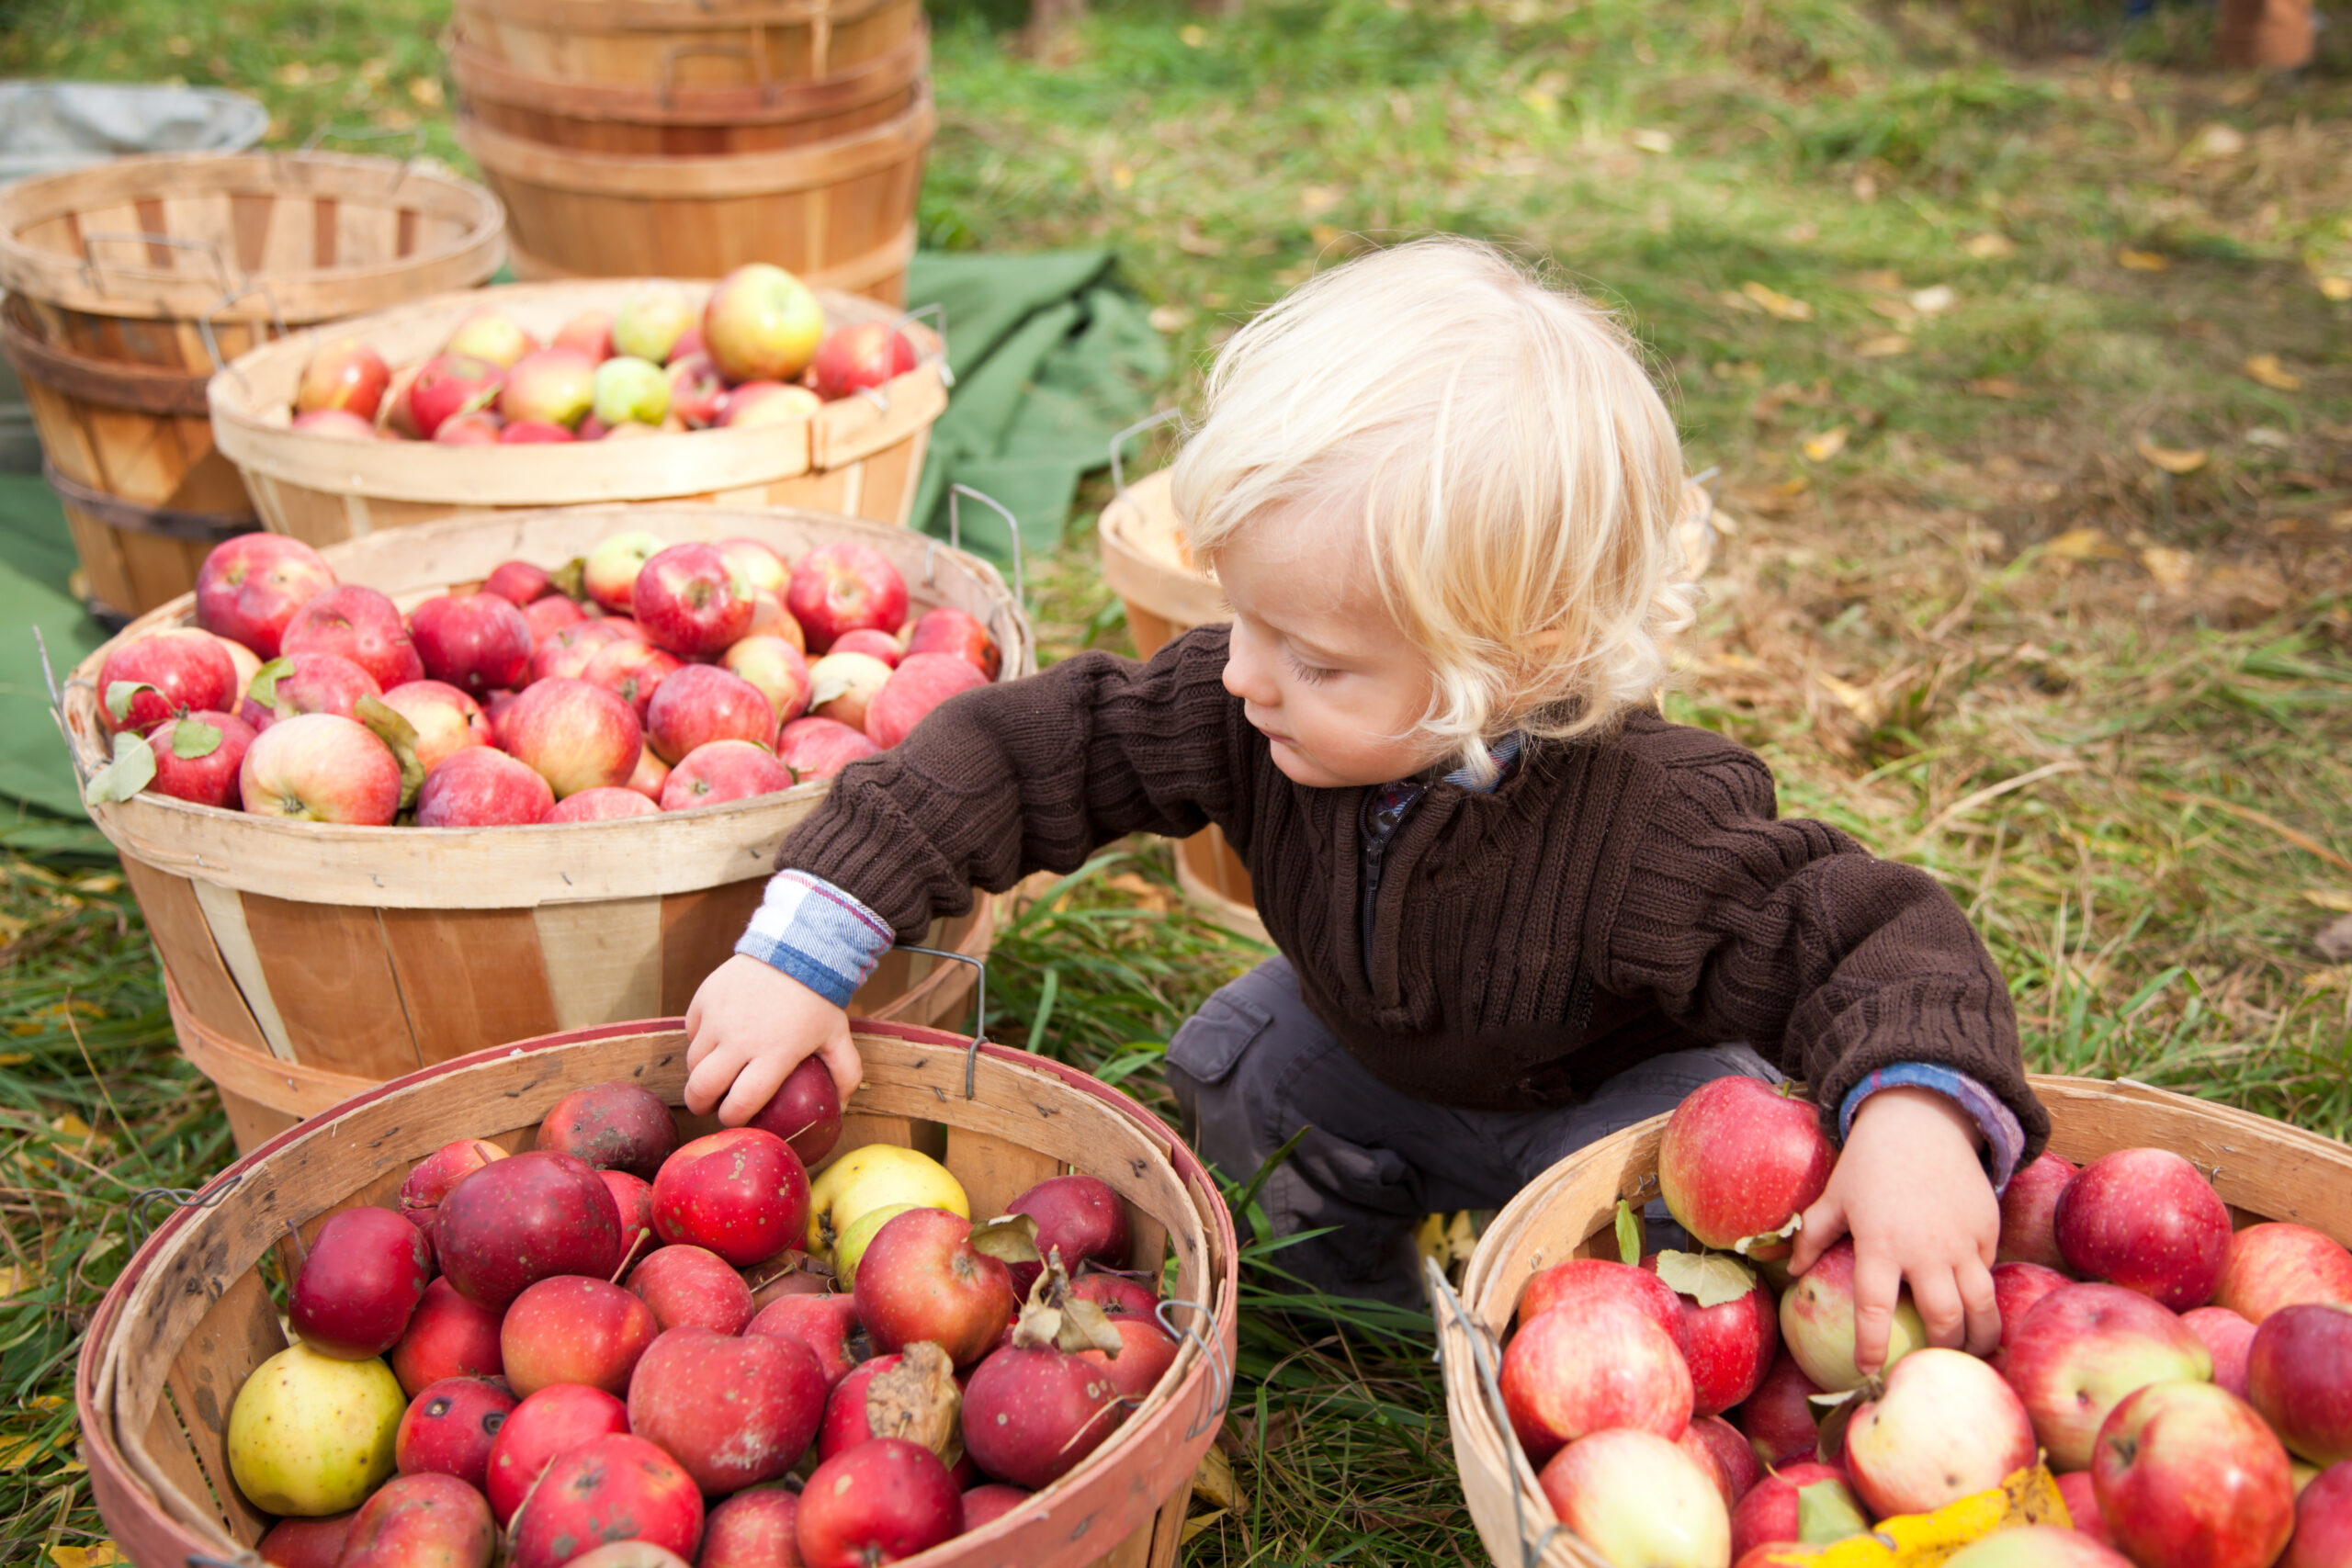 Boy picking up apples at the farm